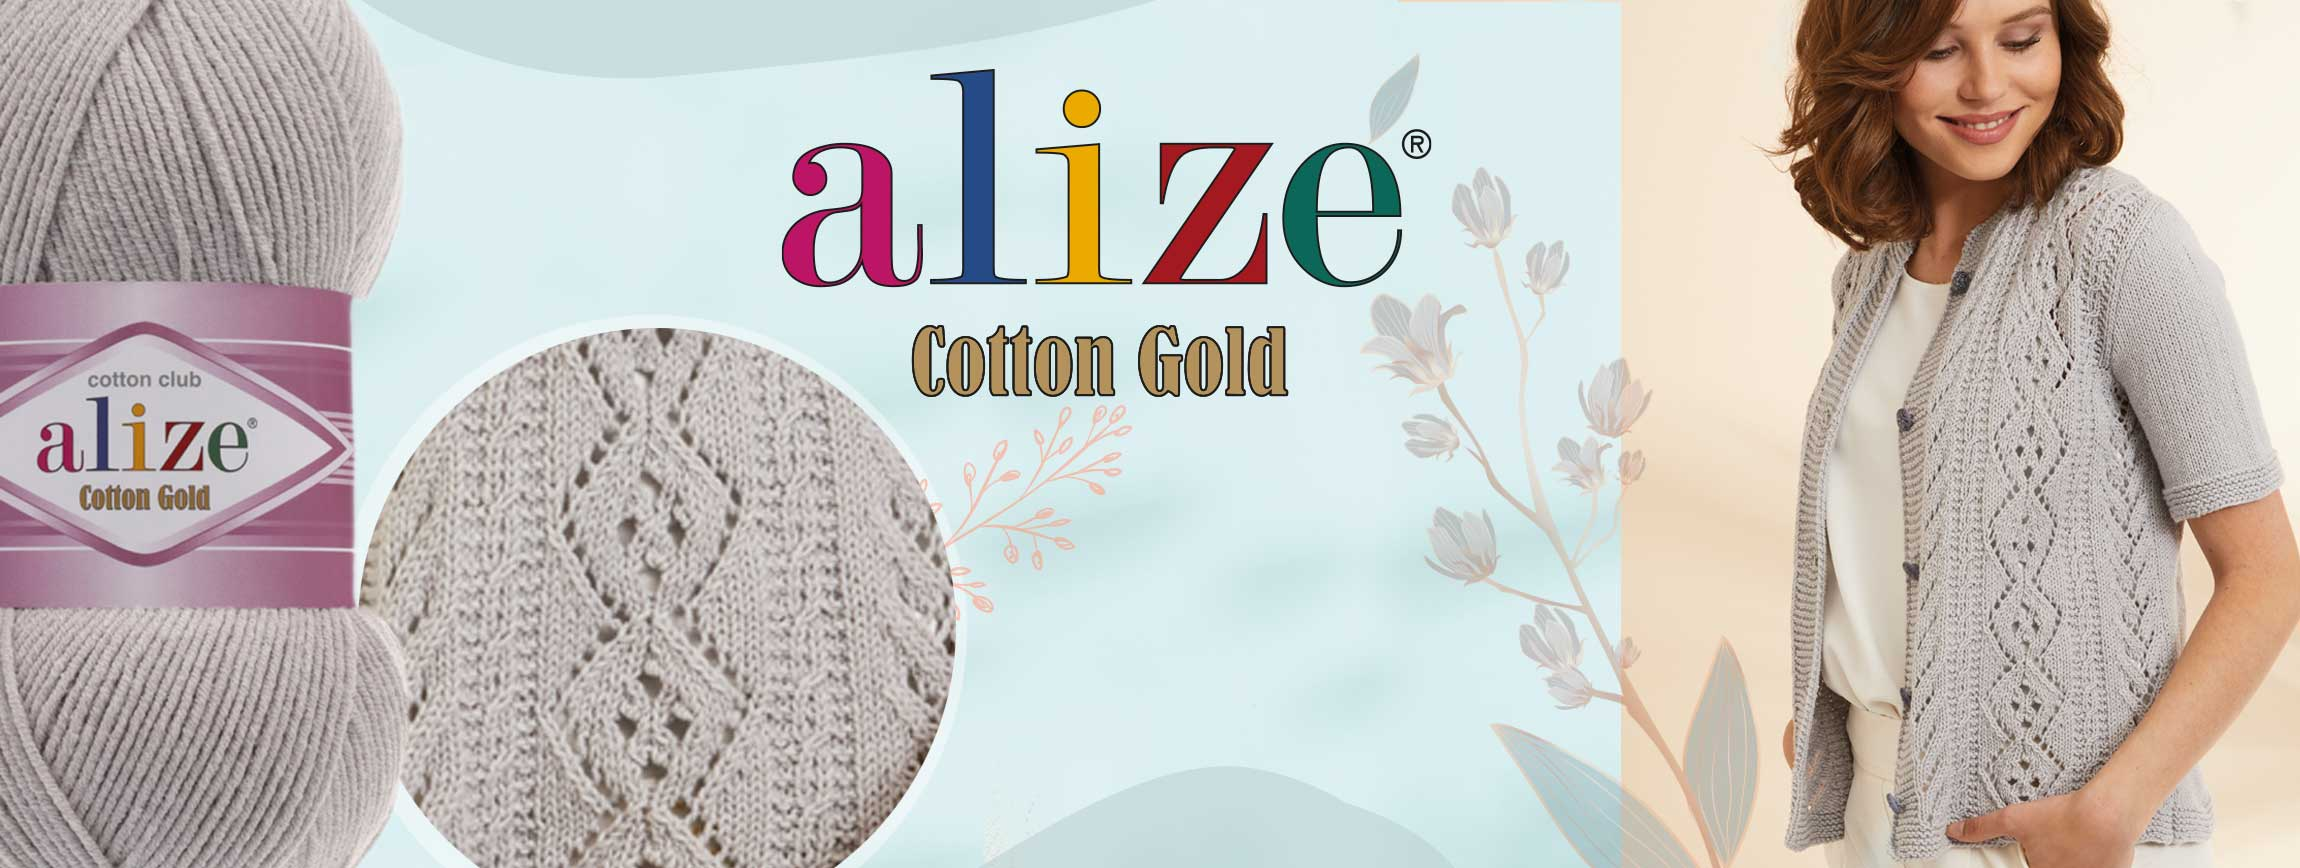 egalanteria - alize - cotton gold